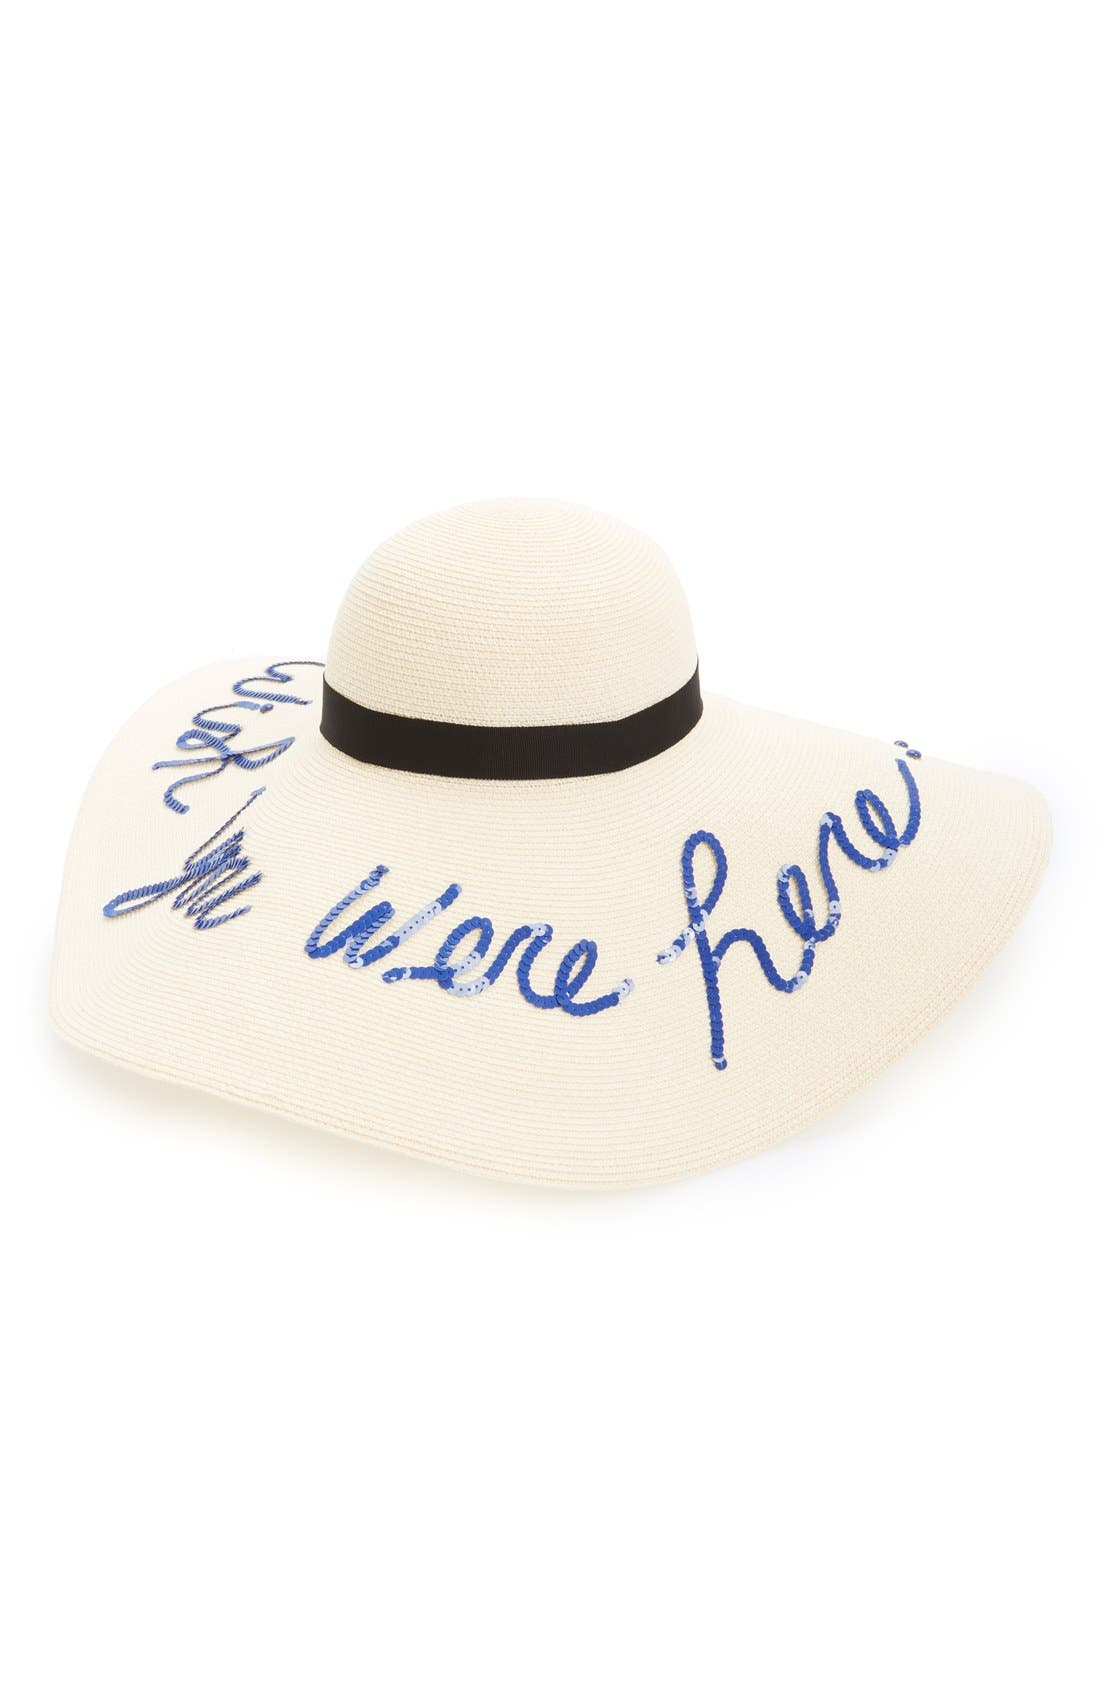 Alternate Image 1 Selected - Eugenia Kim 'Sunny - Wish You Were Here' Straw Sun Hat